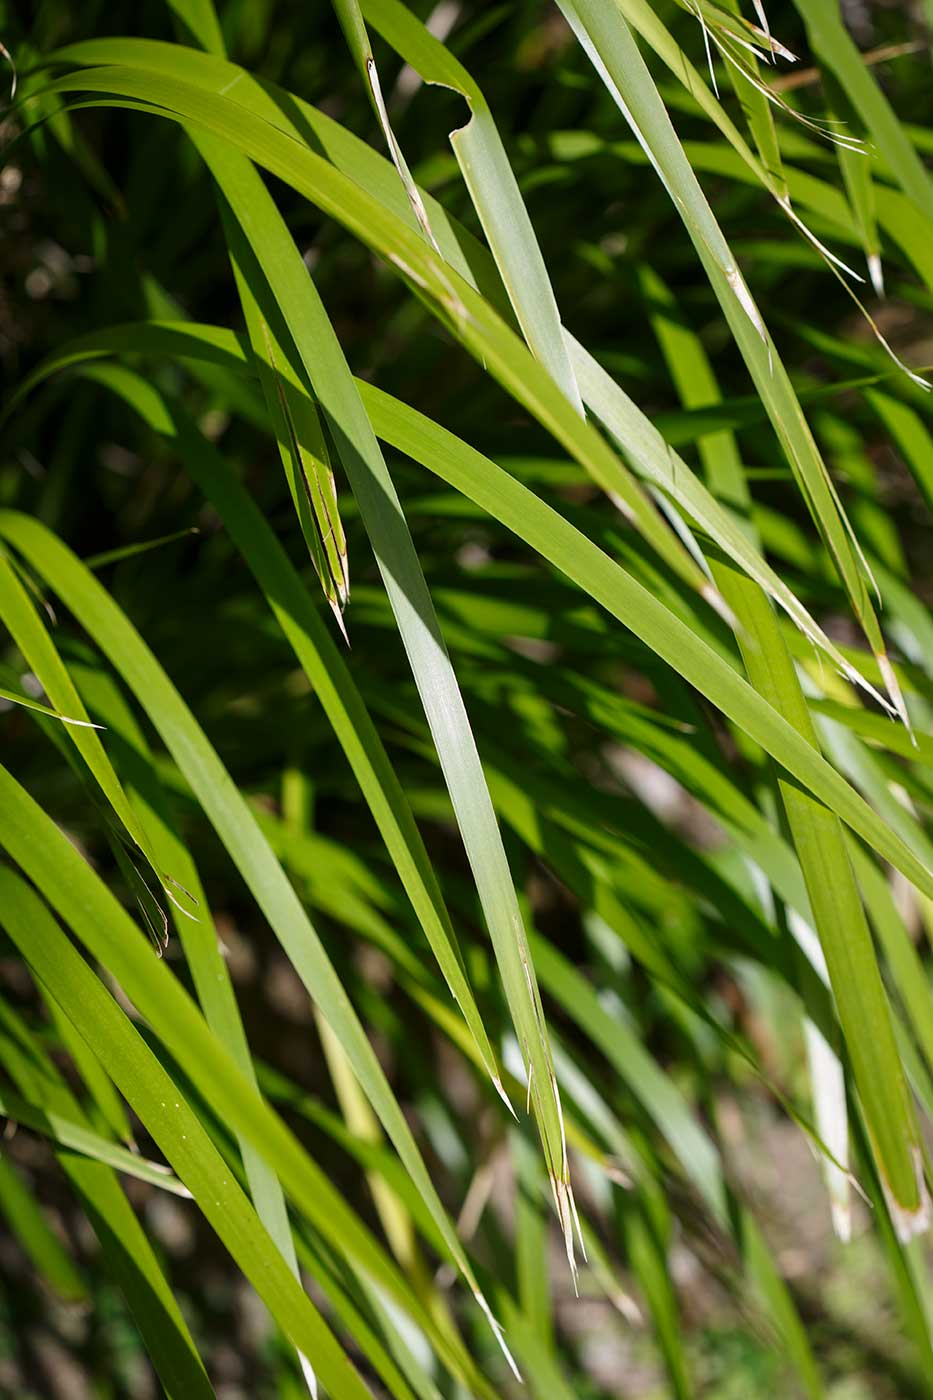 Detail image showing long green blades of grass. - click to view larger image